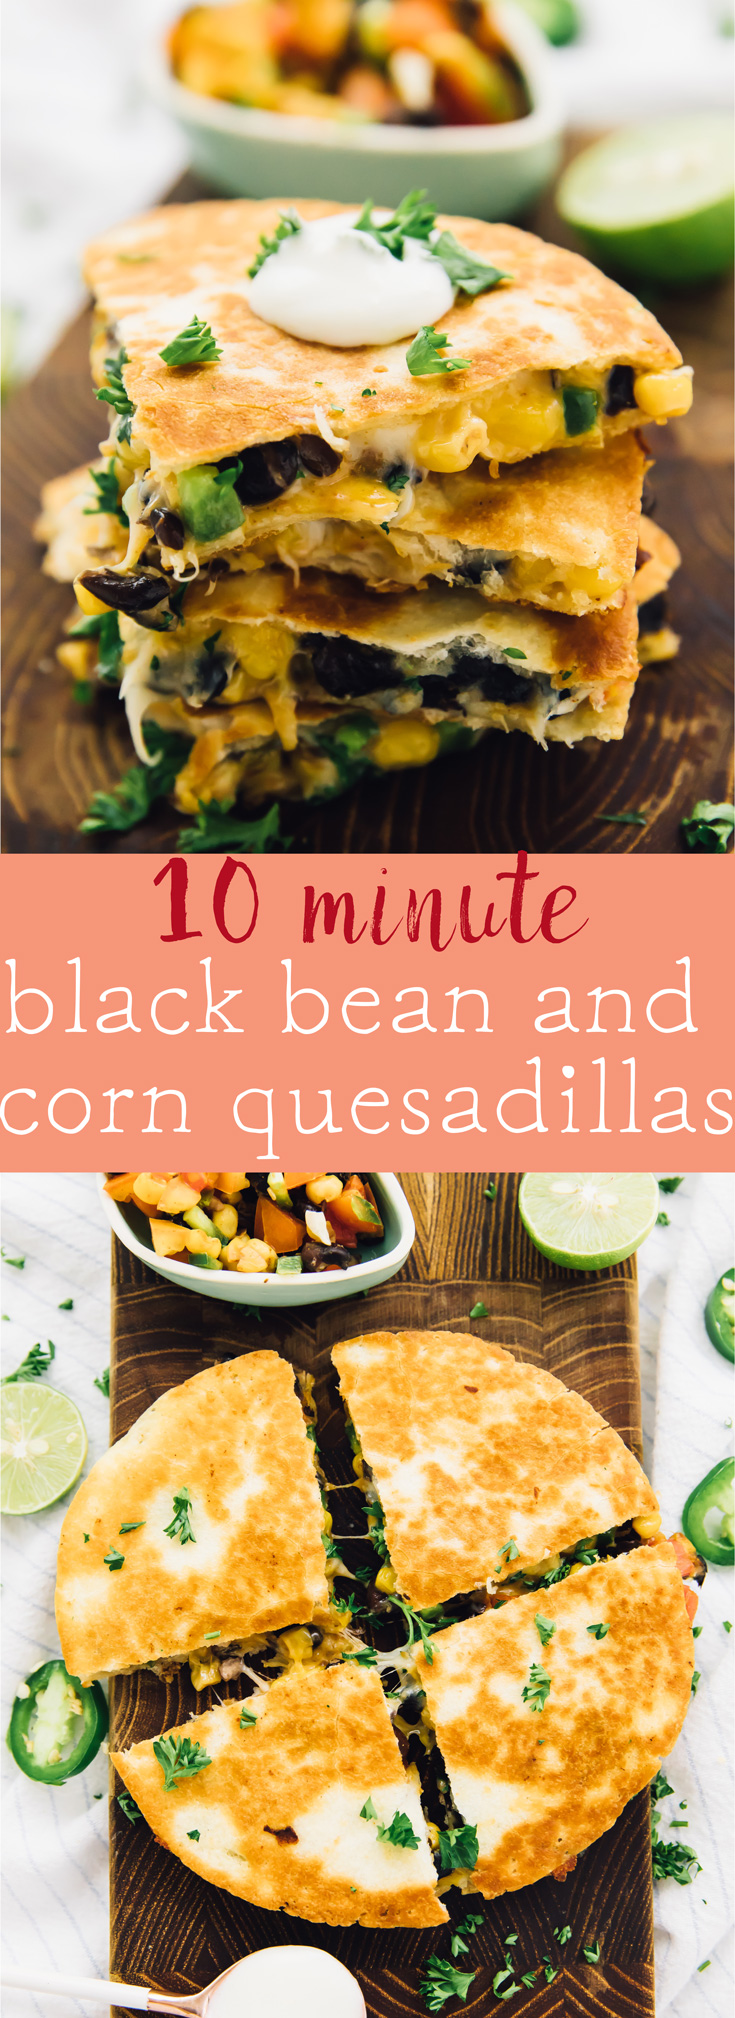 These 10 Minute Black Bean and Corn Quesadillas are so perfect for a quick weeknight dinner! They come together incredibly quick and are so flavourful! via https://jessicainthekitchen.com